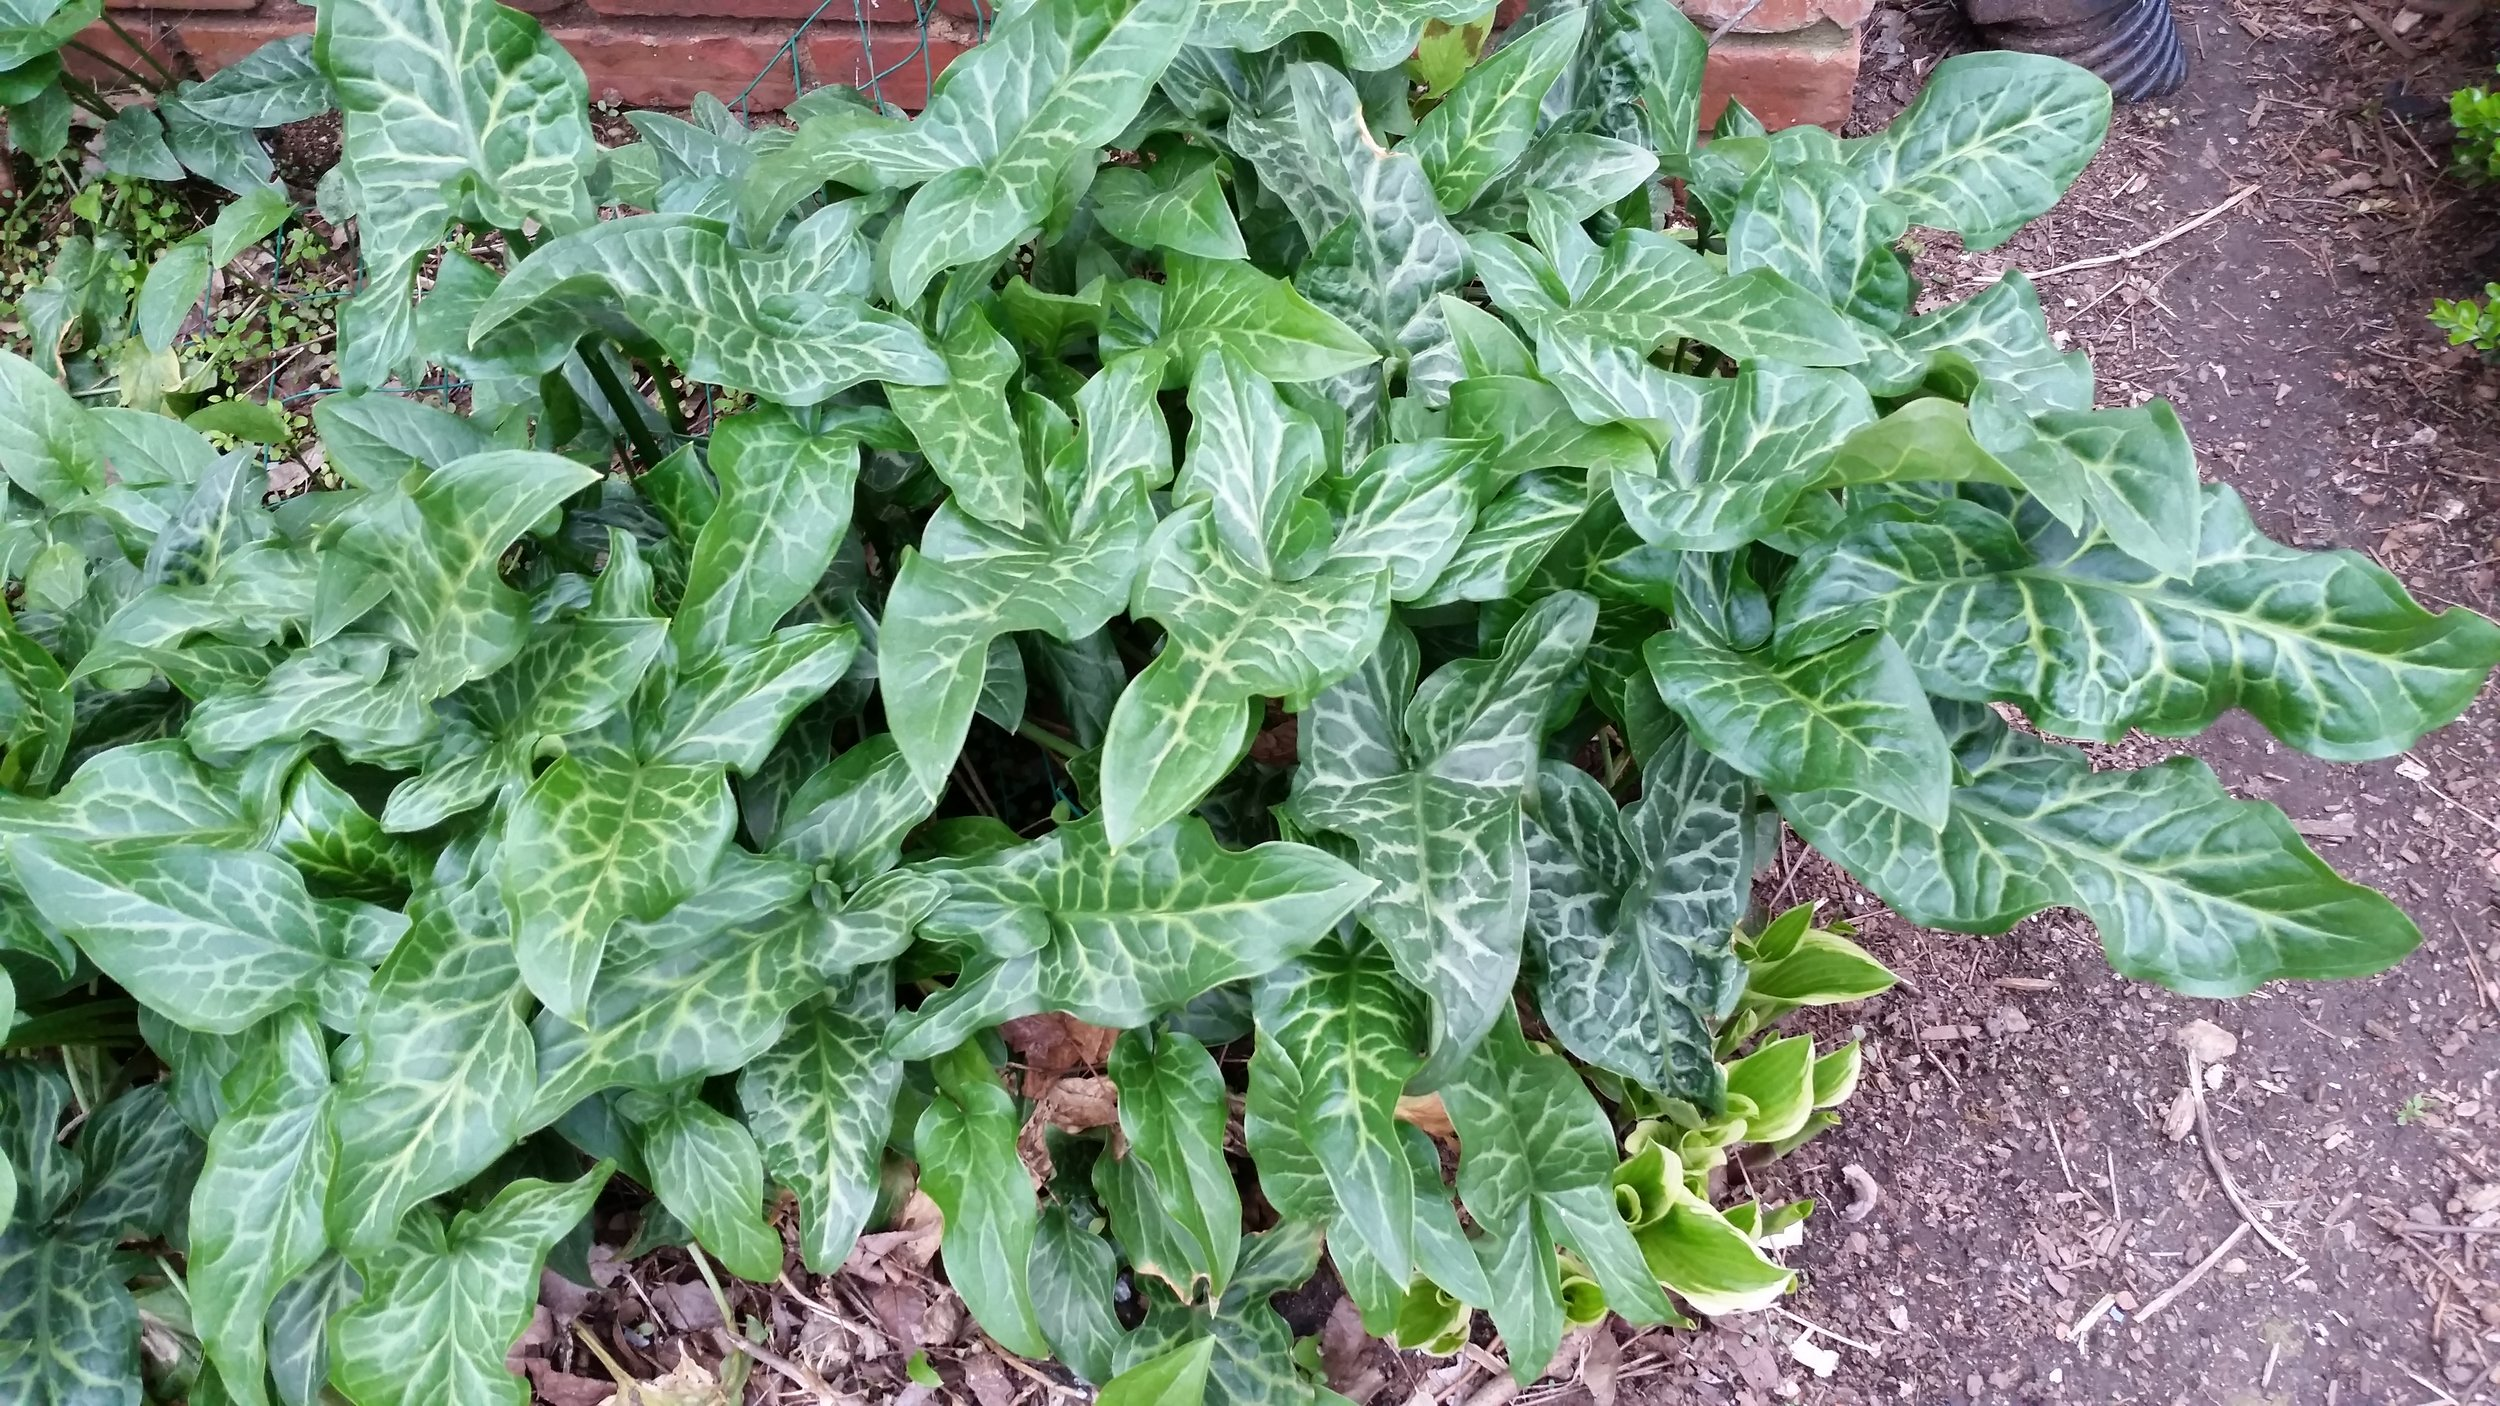 This photo of Arum was taken in early March, last year. Note the emerging hosta leaves at lower right.